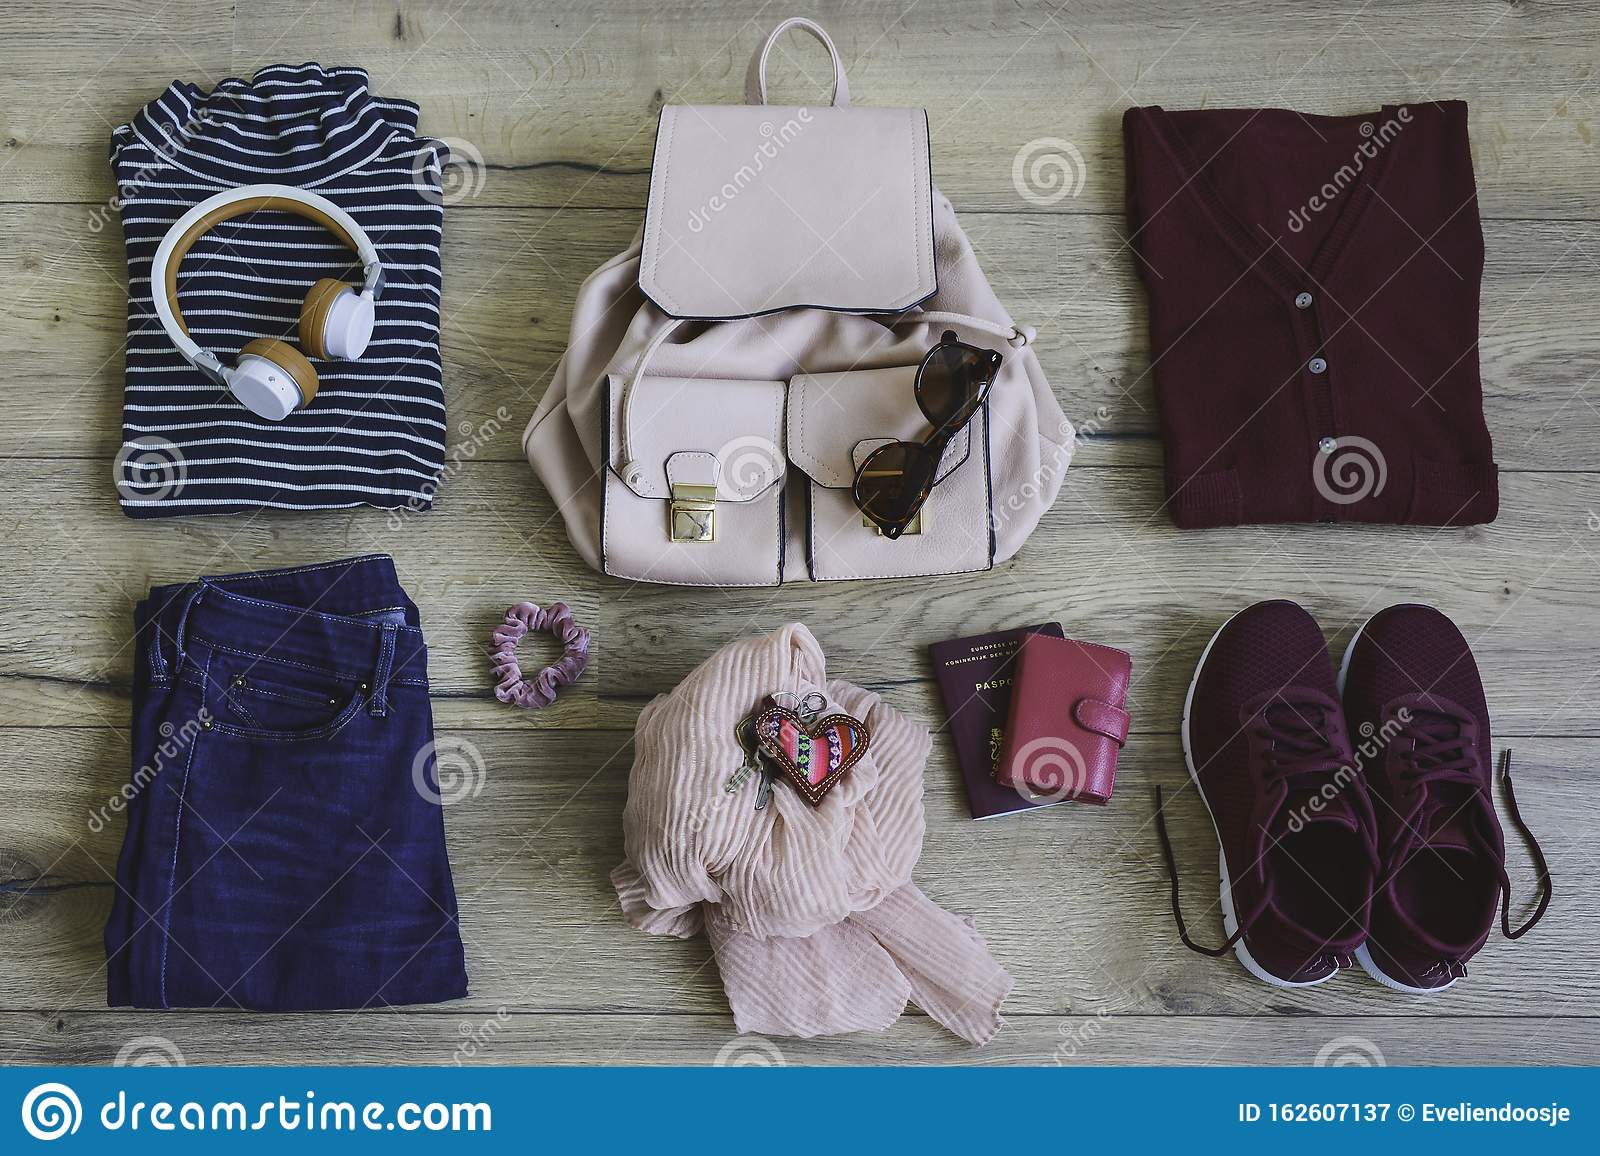 Top View Of Travelers Clothes And Accessories On Wooden Background Stock Image Image Of Concept Journey 162607137